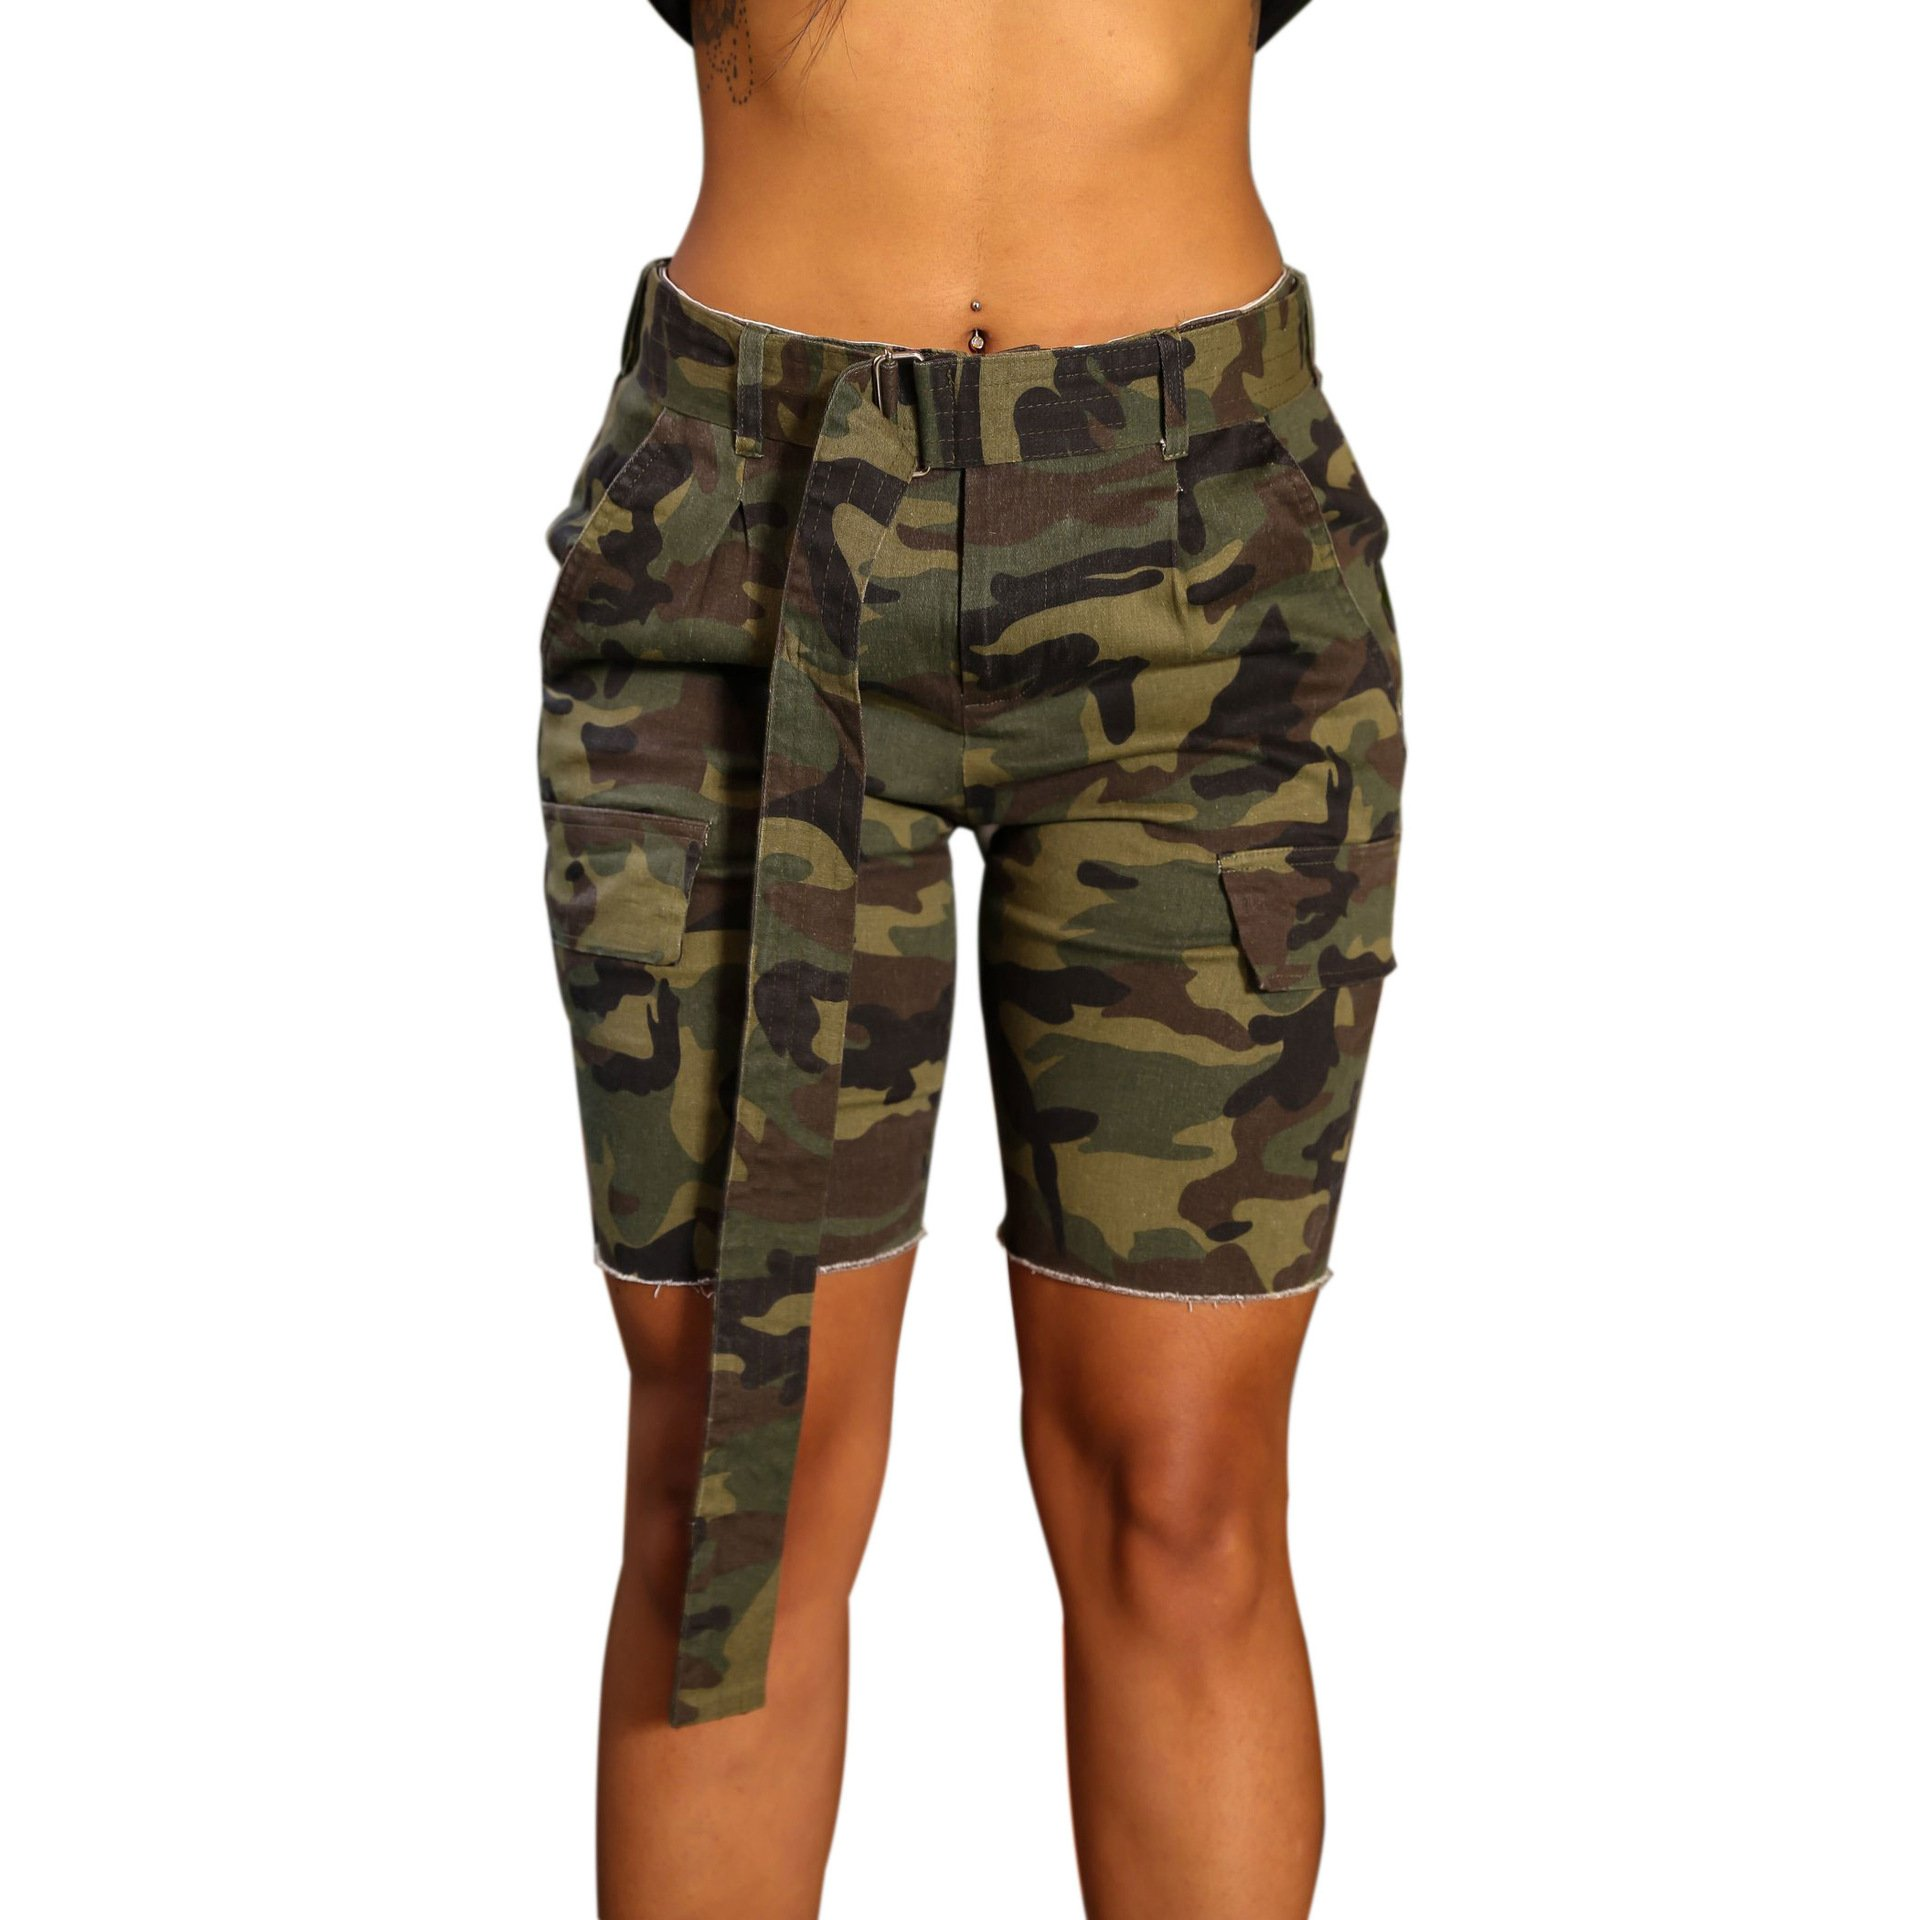 PINLI Camouflage Womens Denim Shorts Sexy Casual Summer Stretch Plus Size high Waisted Beach Jeans Shorts Capri (Camo L)